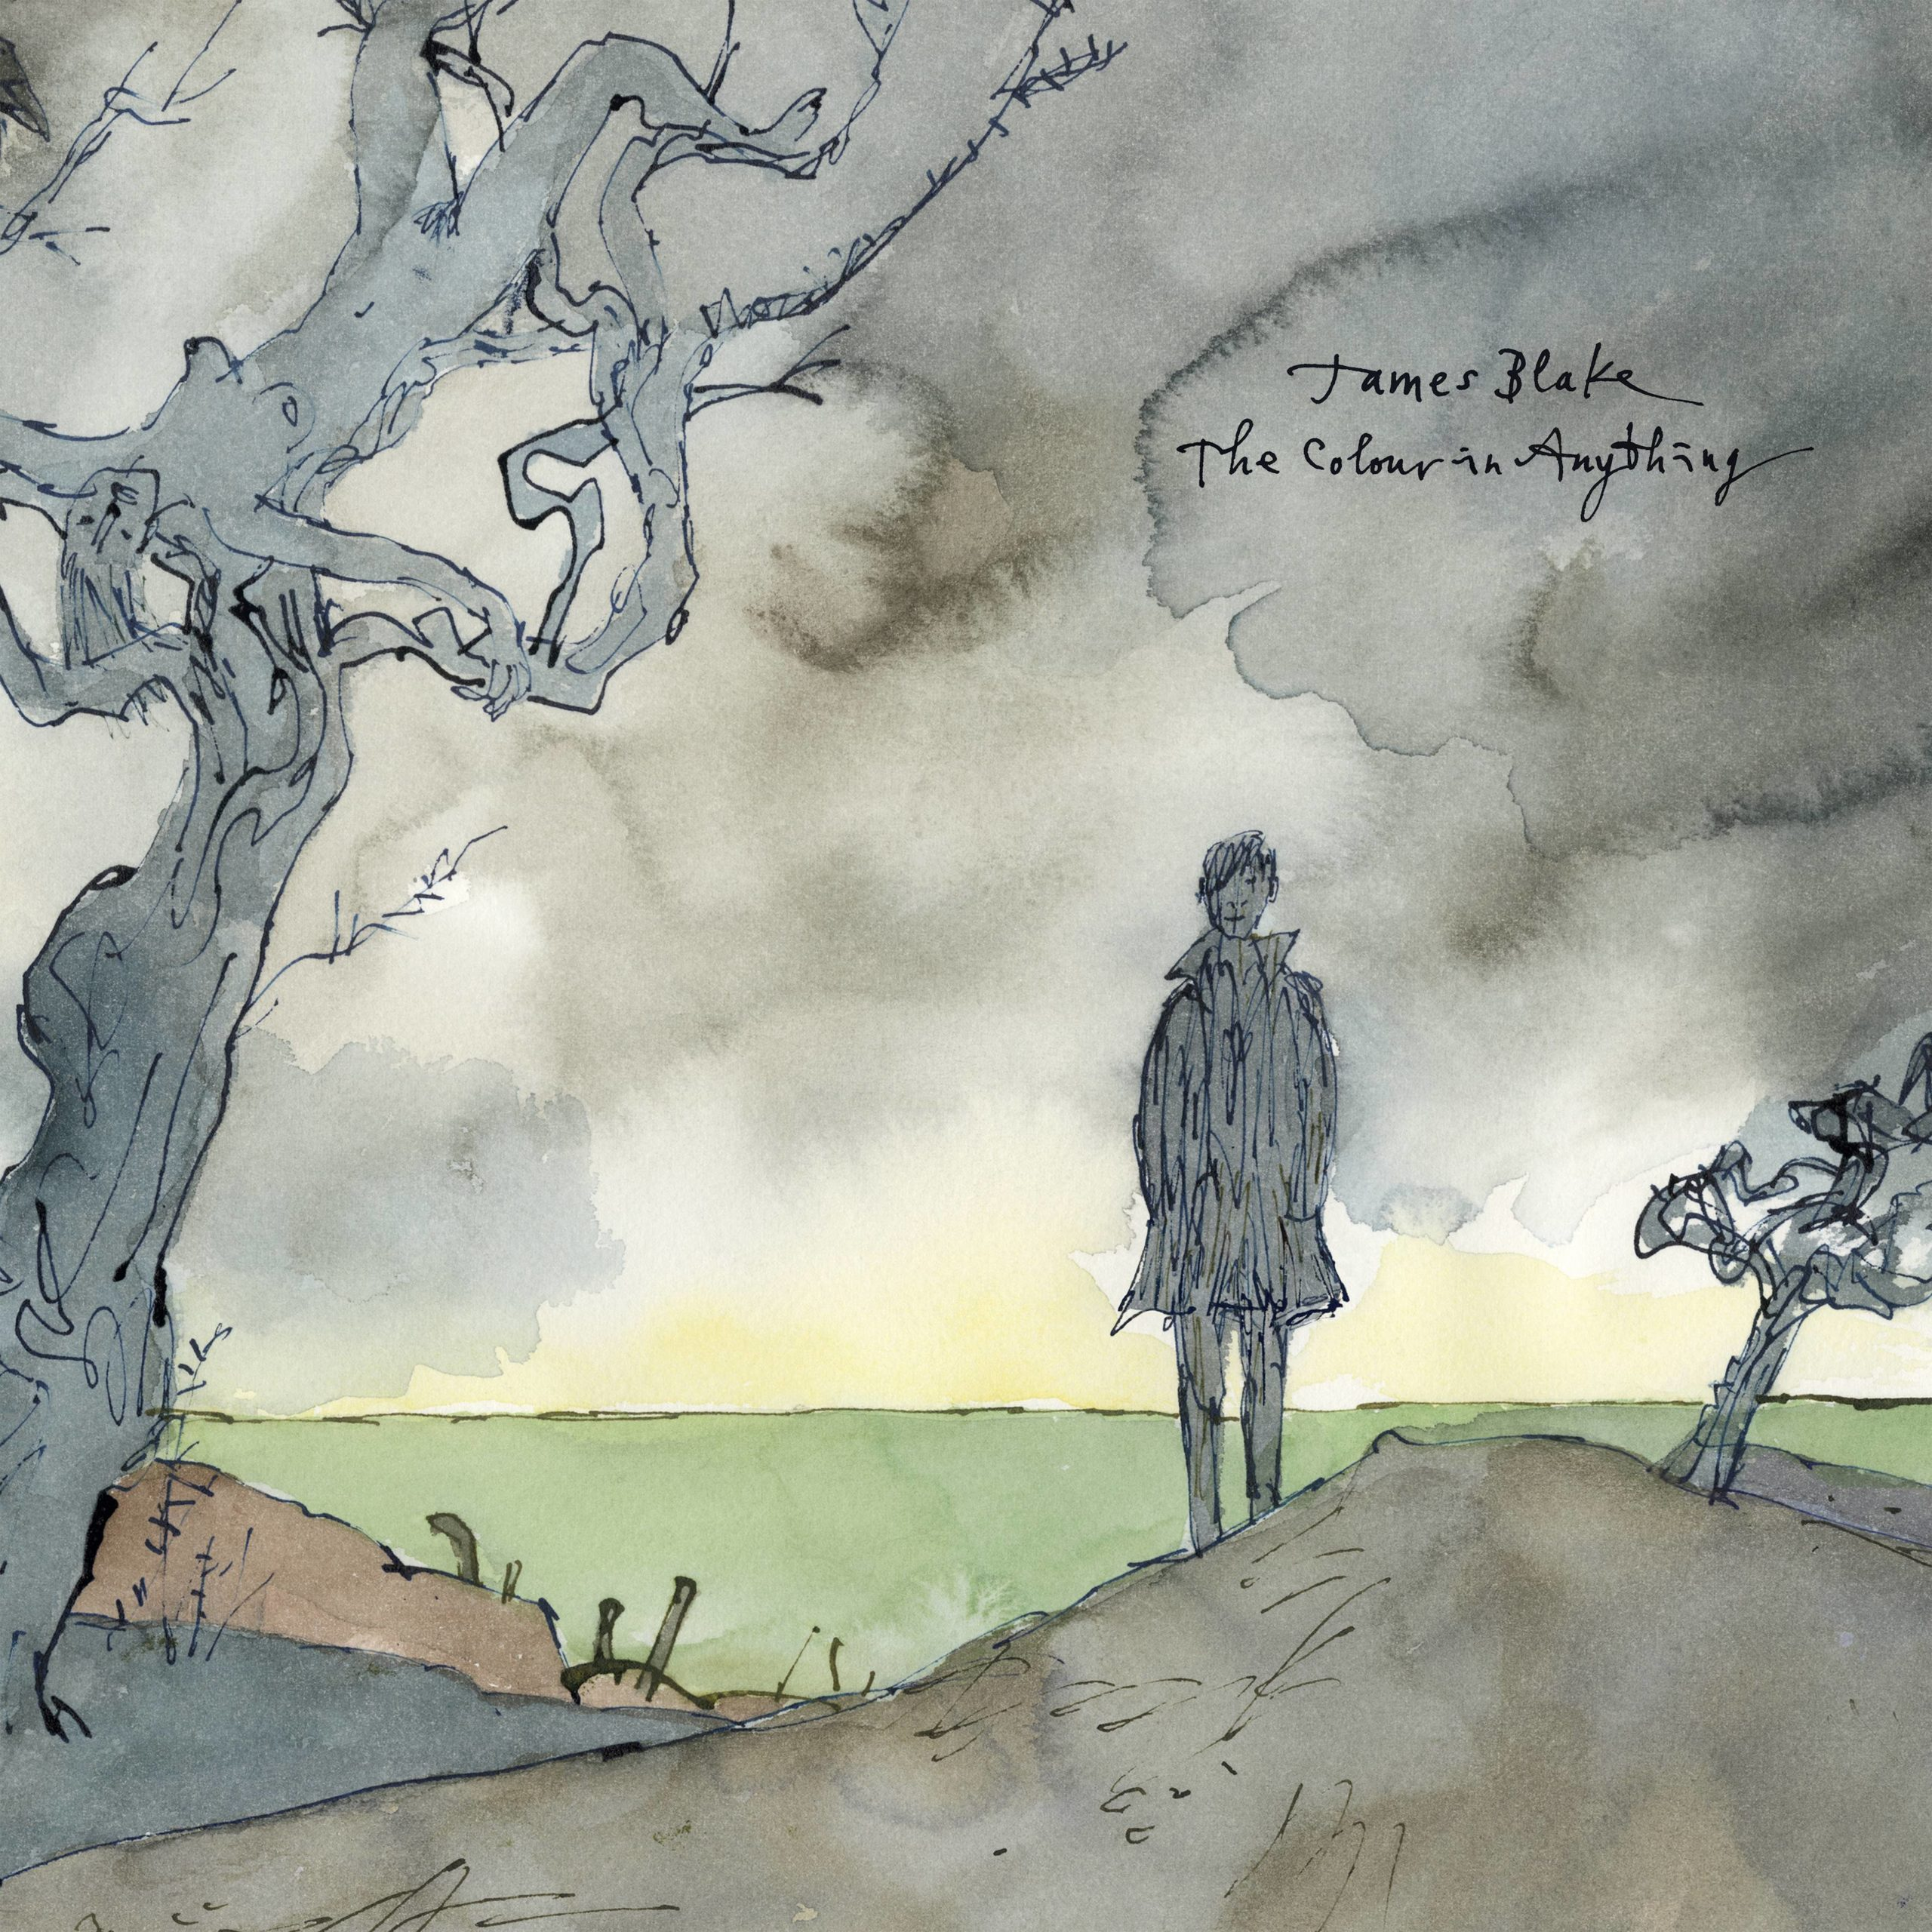 James Blake The Colour In Anything Track By Track Review